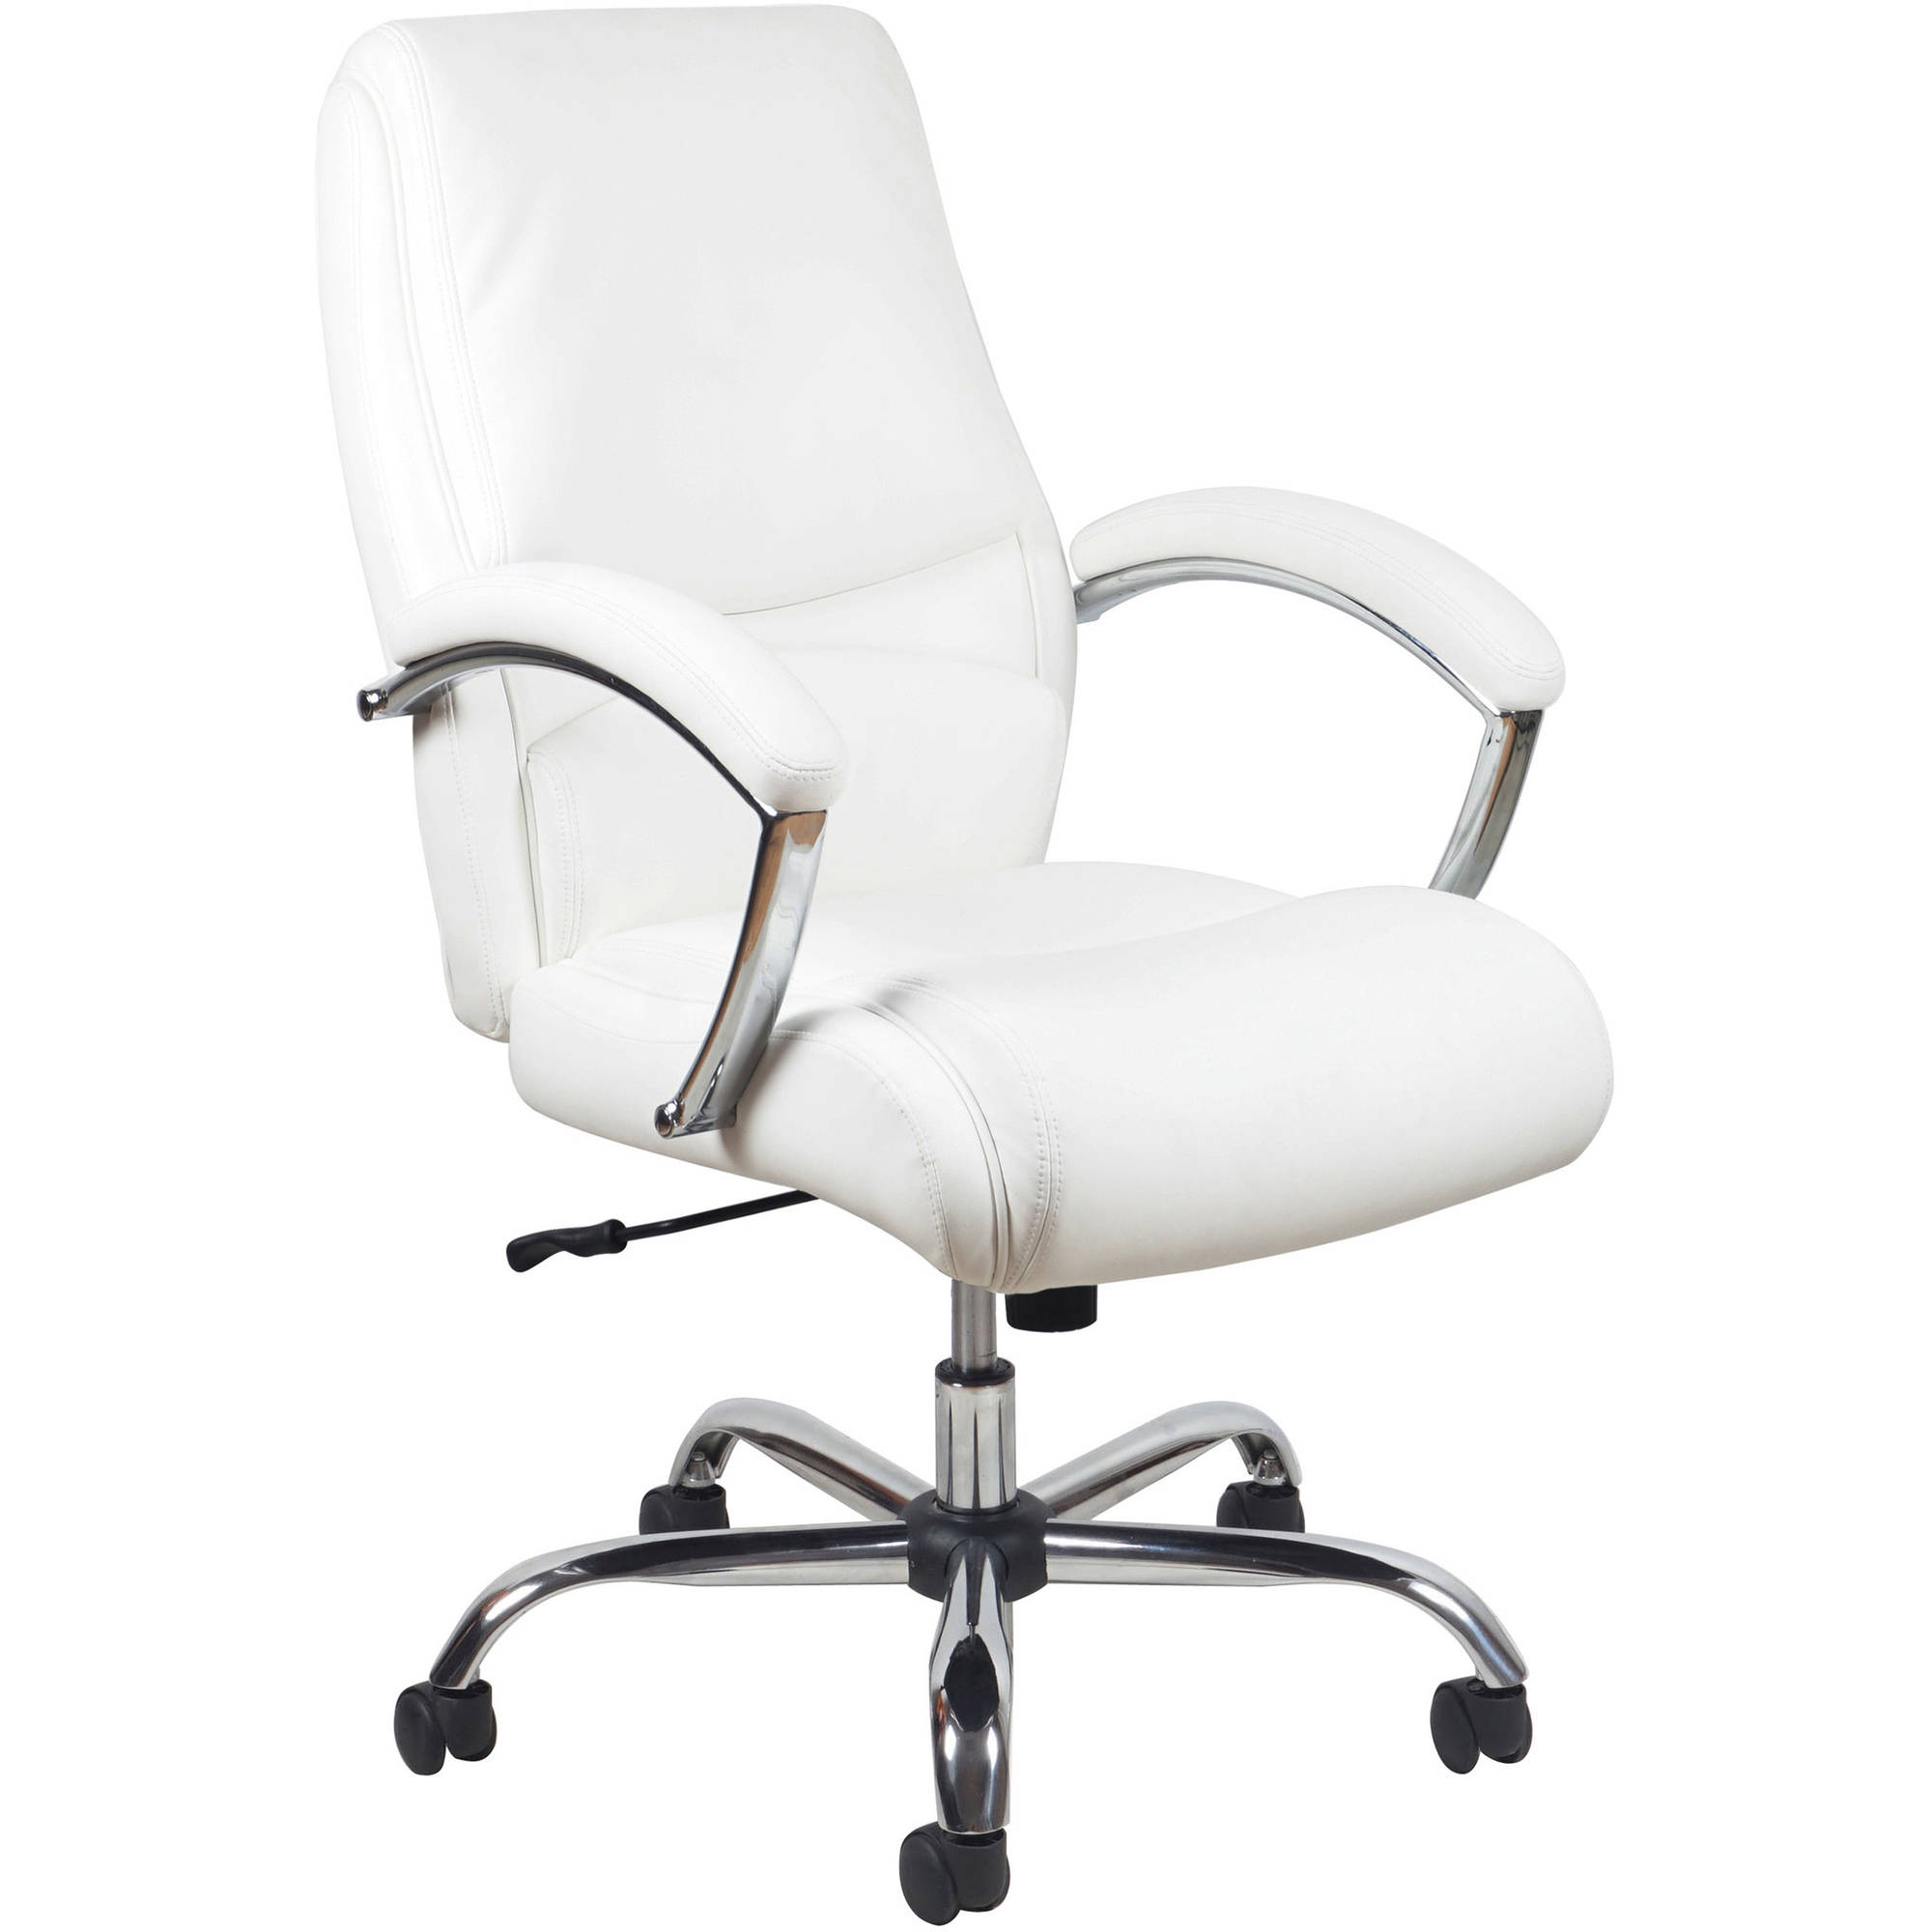 White Office Chairs - Essentials by ofm ergonomic high back leather executive office chair with arms white chrome walmart com